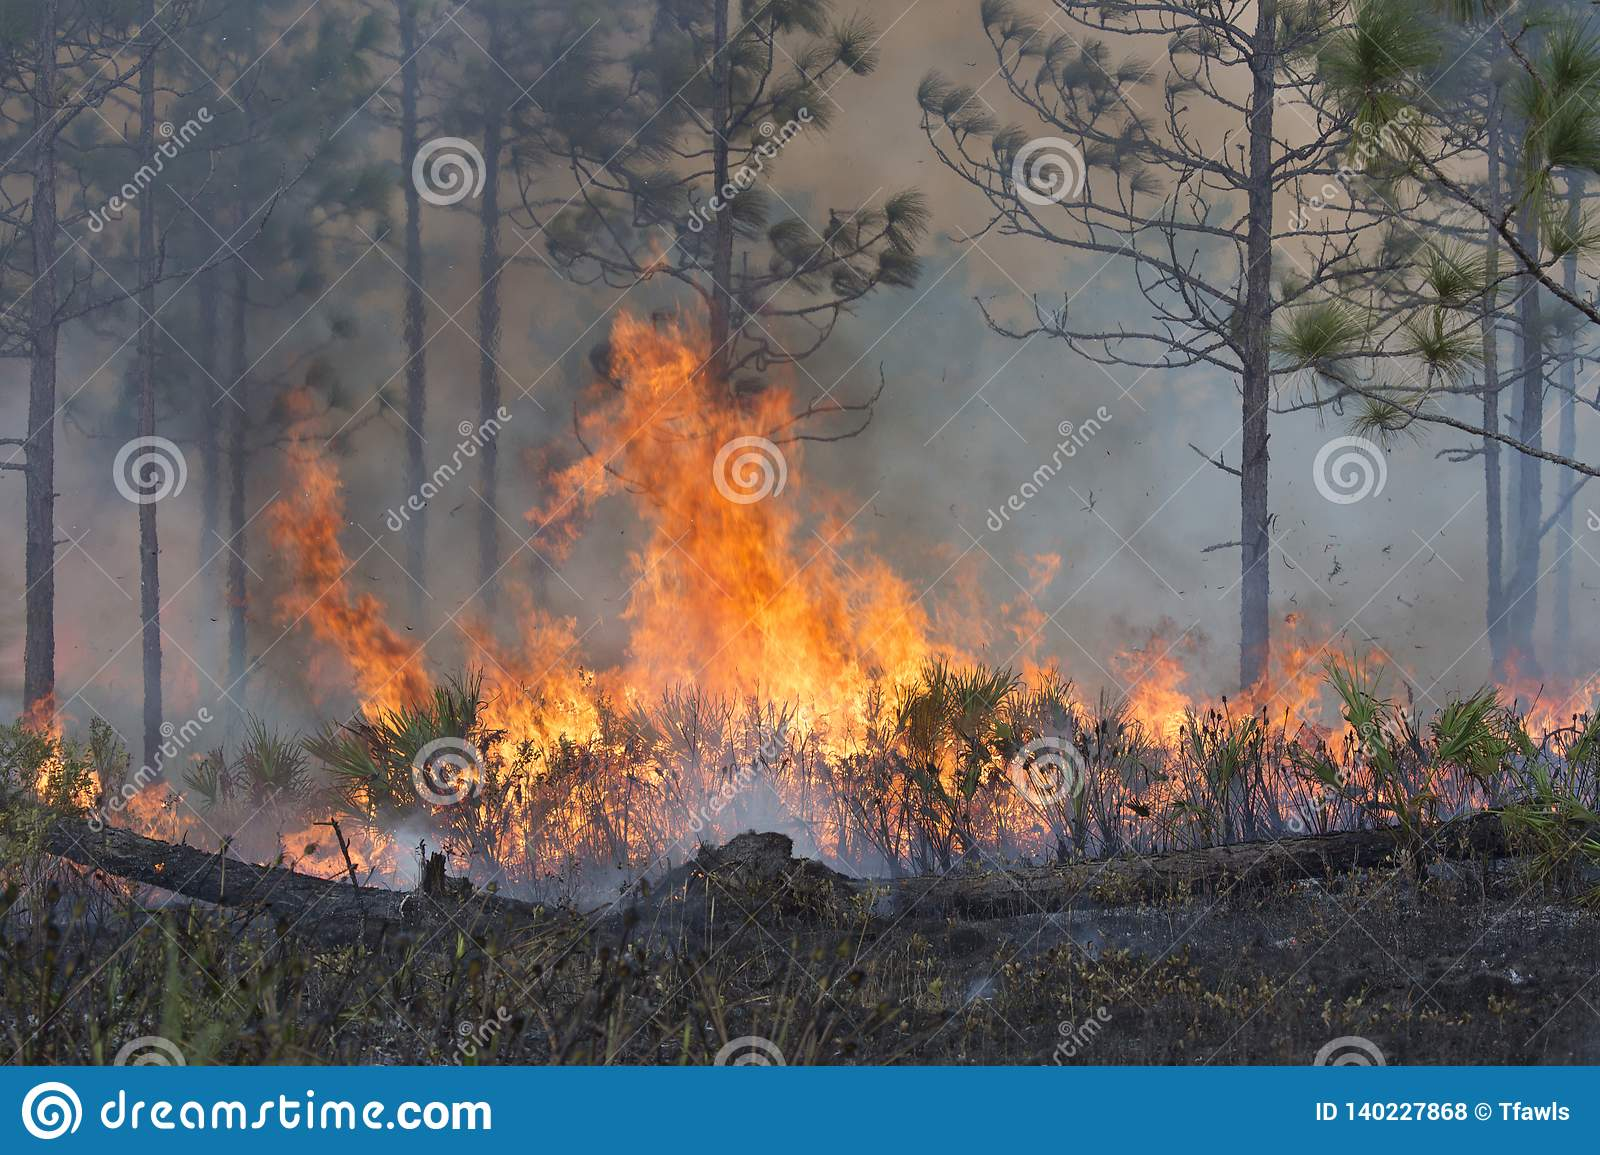 Forest Fired Under Controlled Conditions